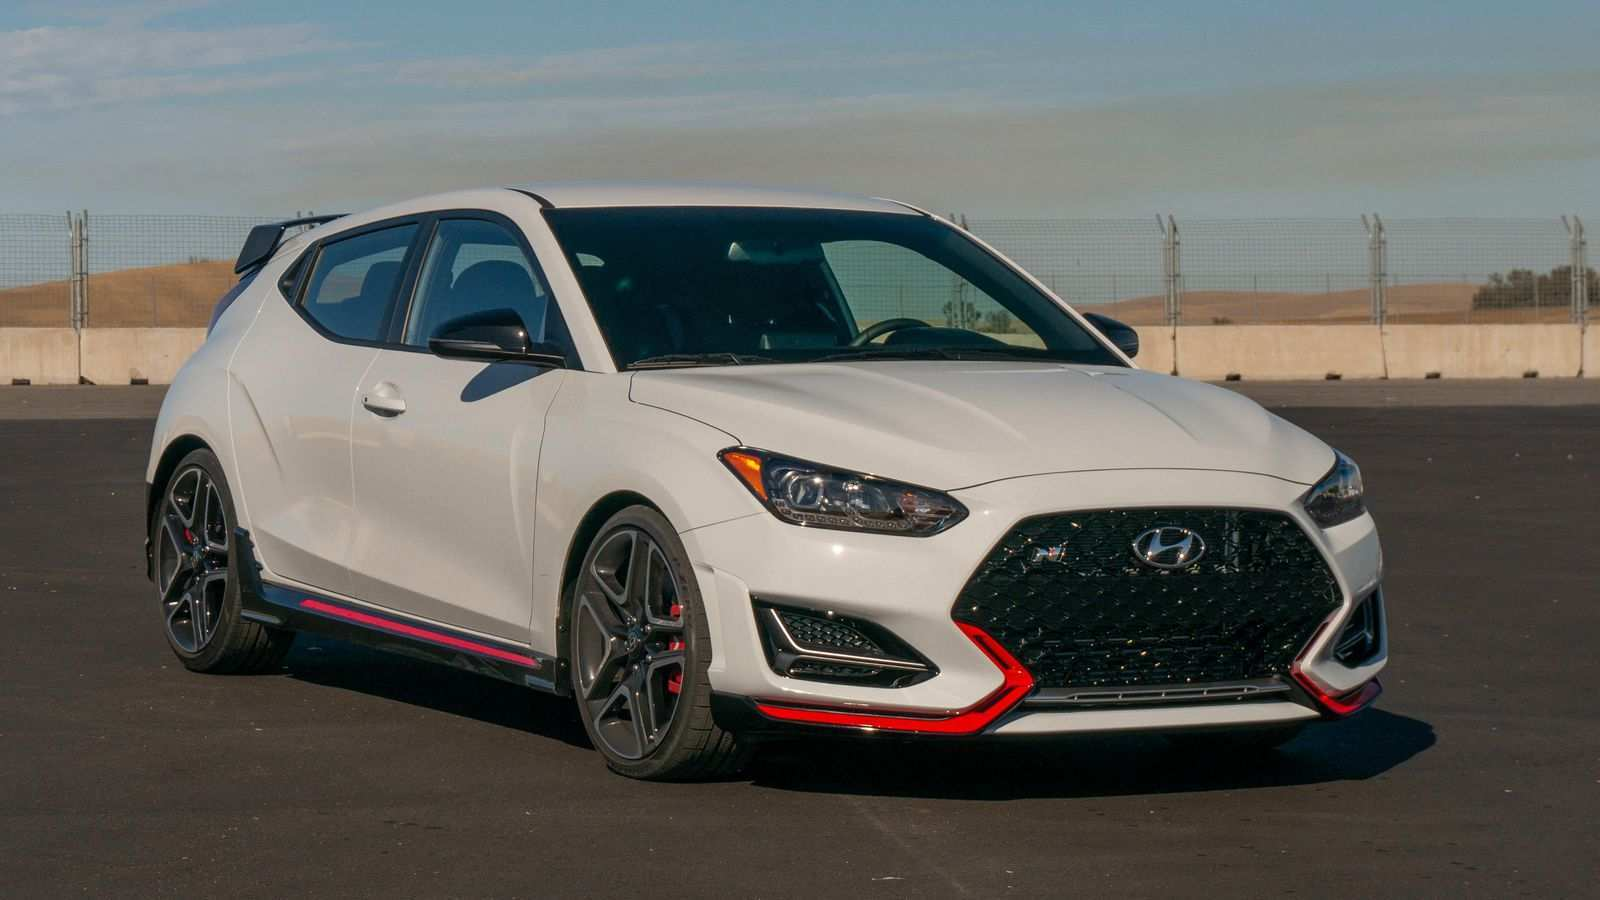 90 Great 2019 Hyundai Veloster N Interior by 2019 Hyundai Veloster N